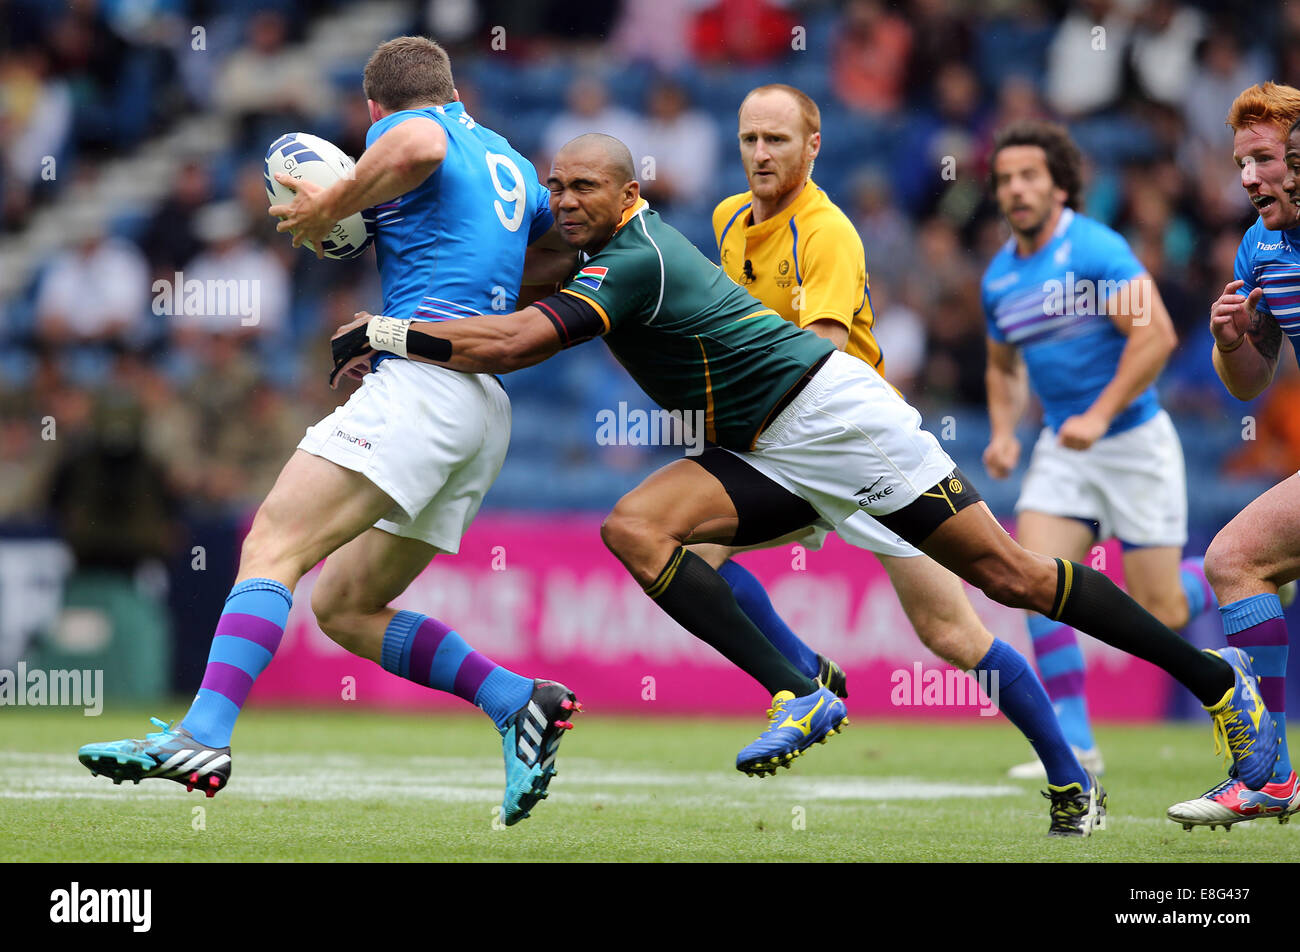 Mark Bennett (SCO) is tackled by Cornal Hendricks (RSA). South Africa v Scotland. - Rugby SevensIbrox stadium - - Stock Image